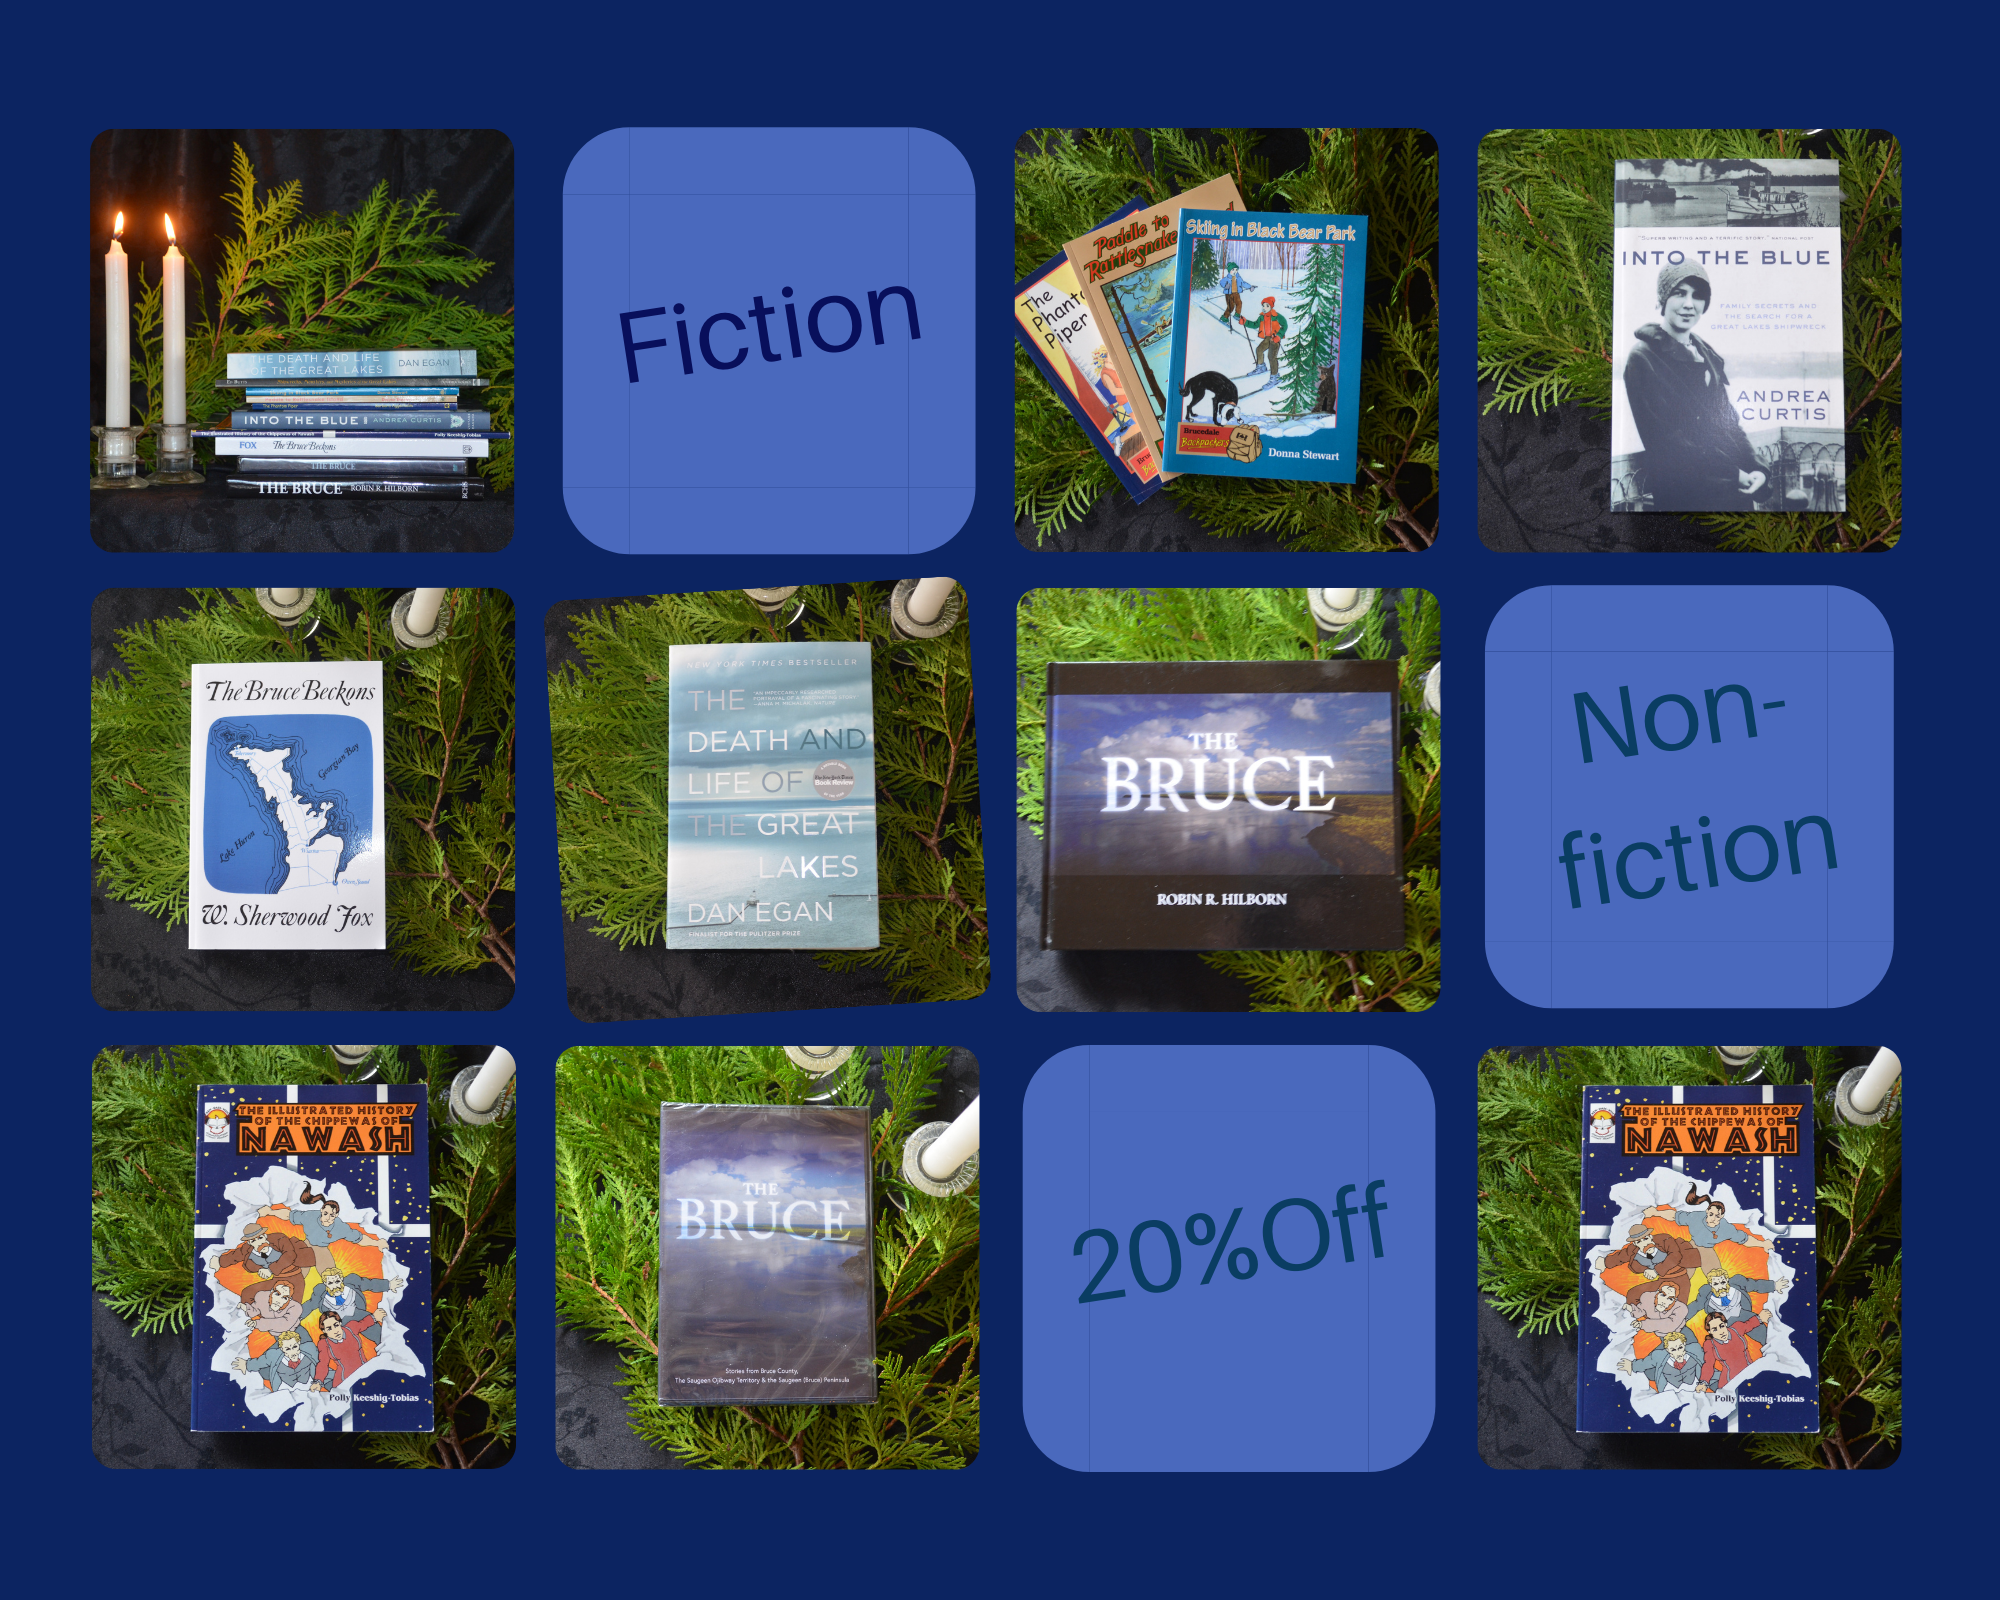 20% Off Bruce County Connected Book Titles for You and Those you Love!